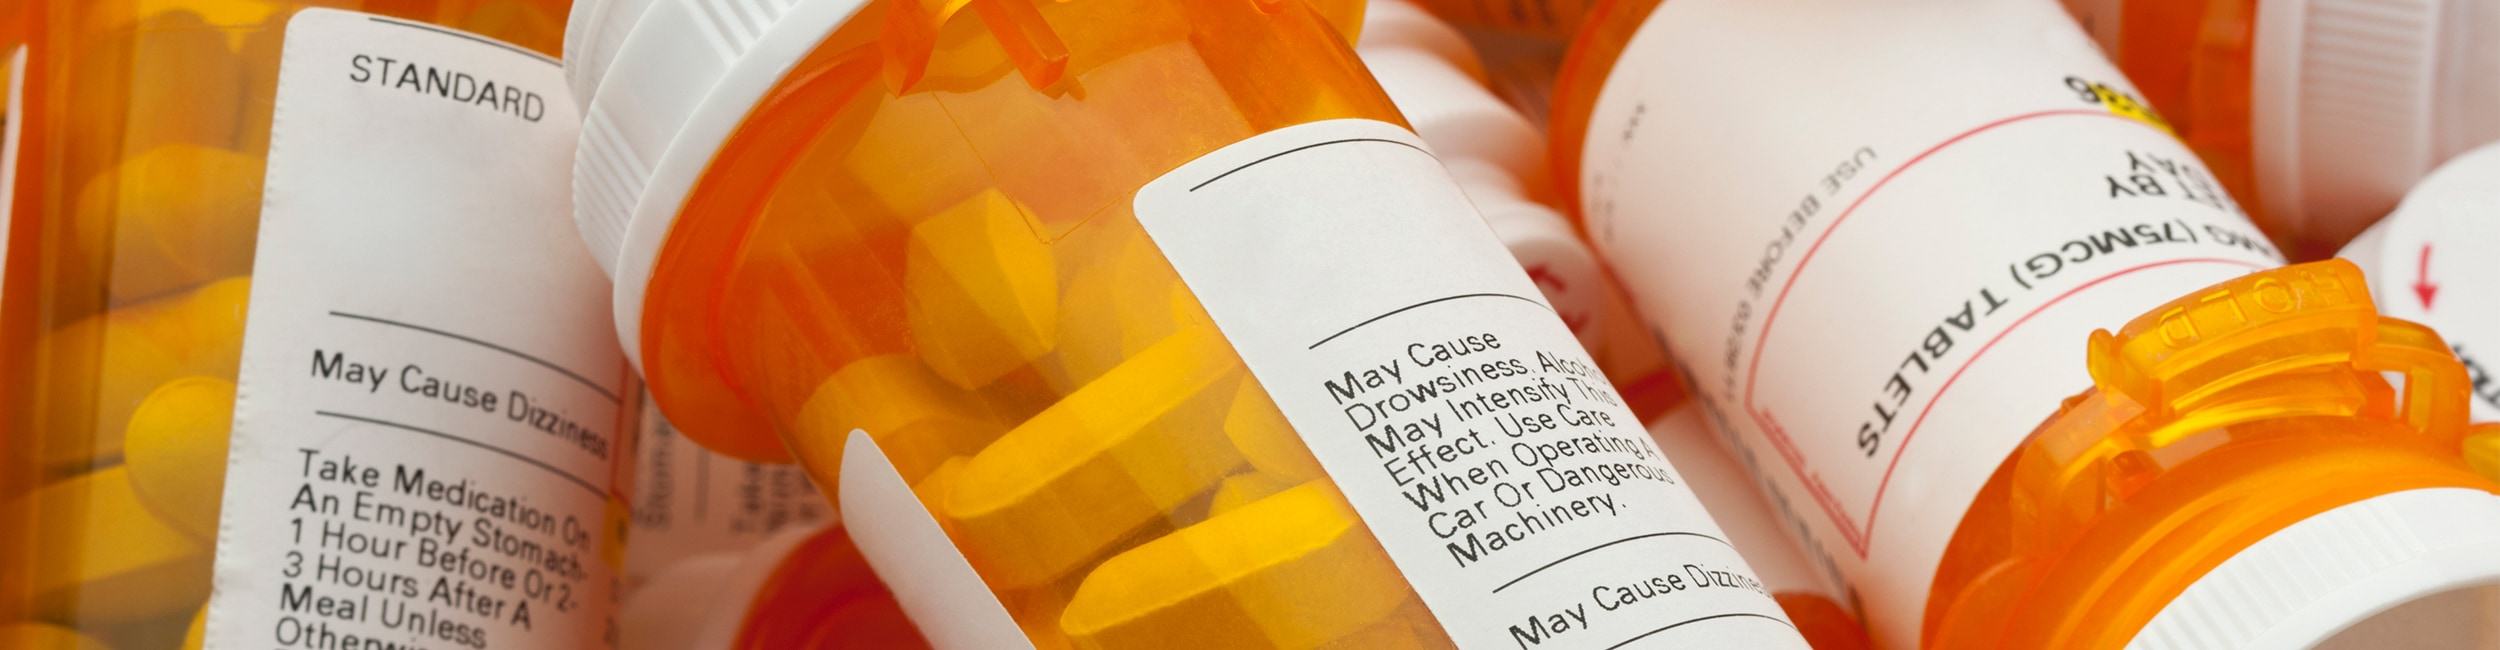 Medical bottles and labels